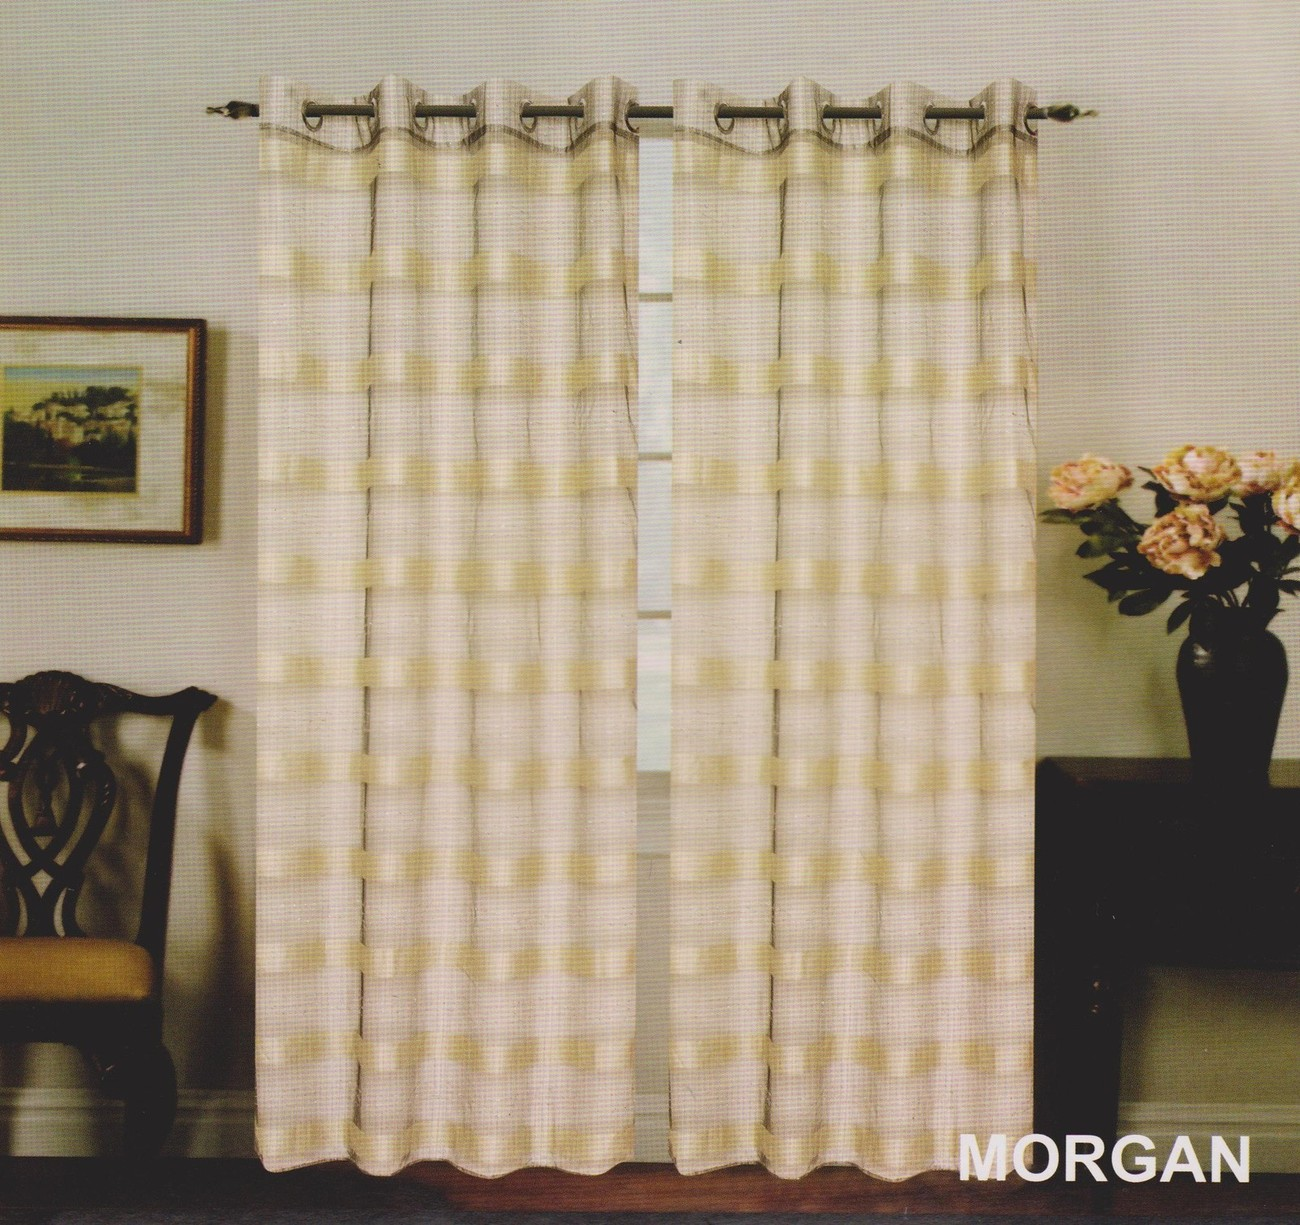 "New Elegant Metal Grommets See-Through Sheer Curtain Set ""Morgan"" Beige & Black"